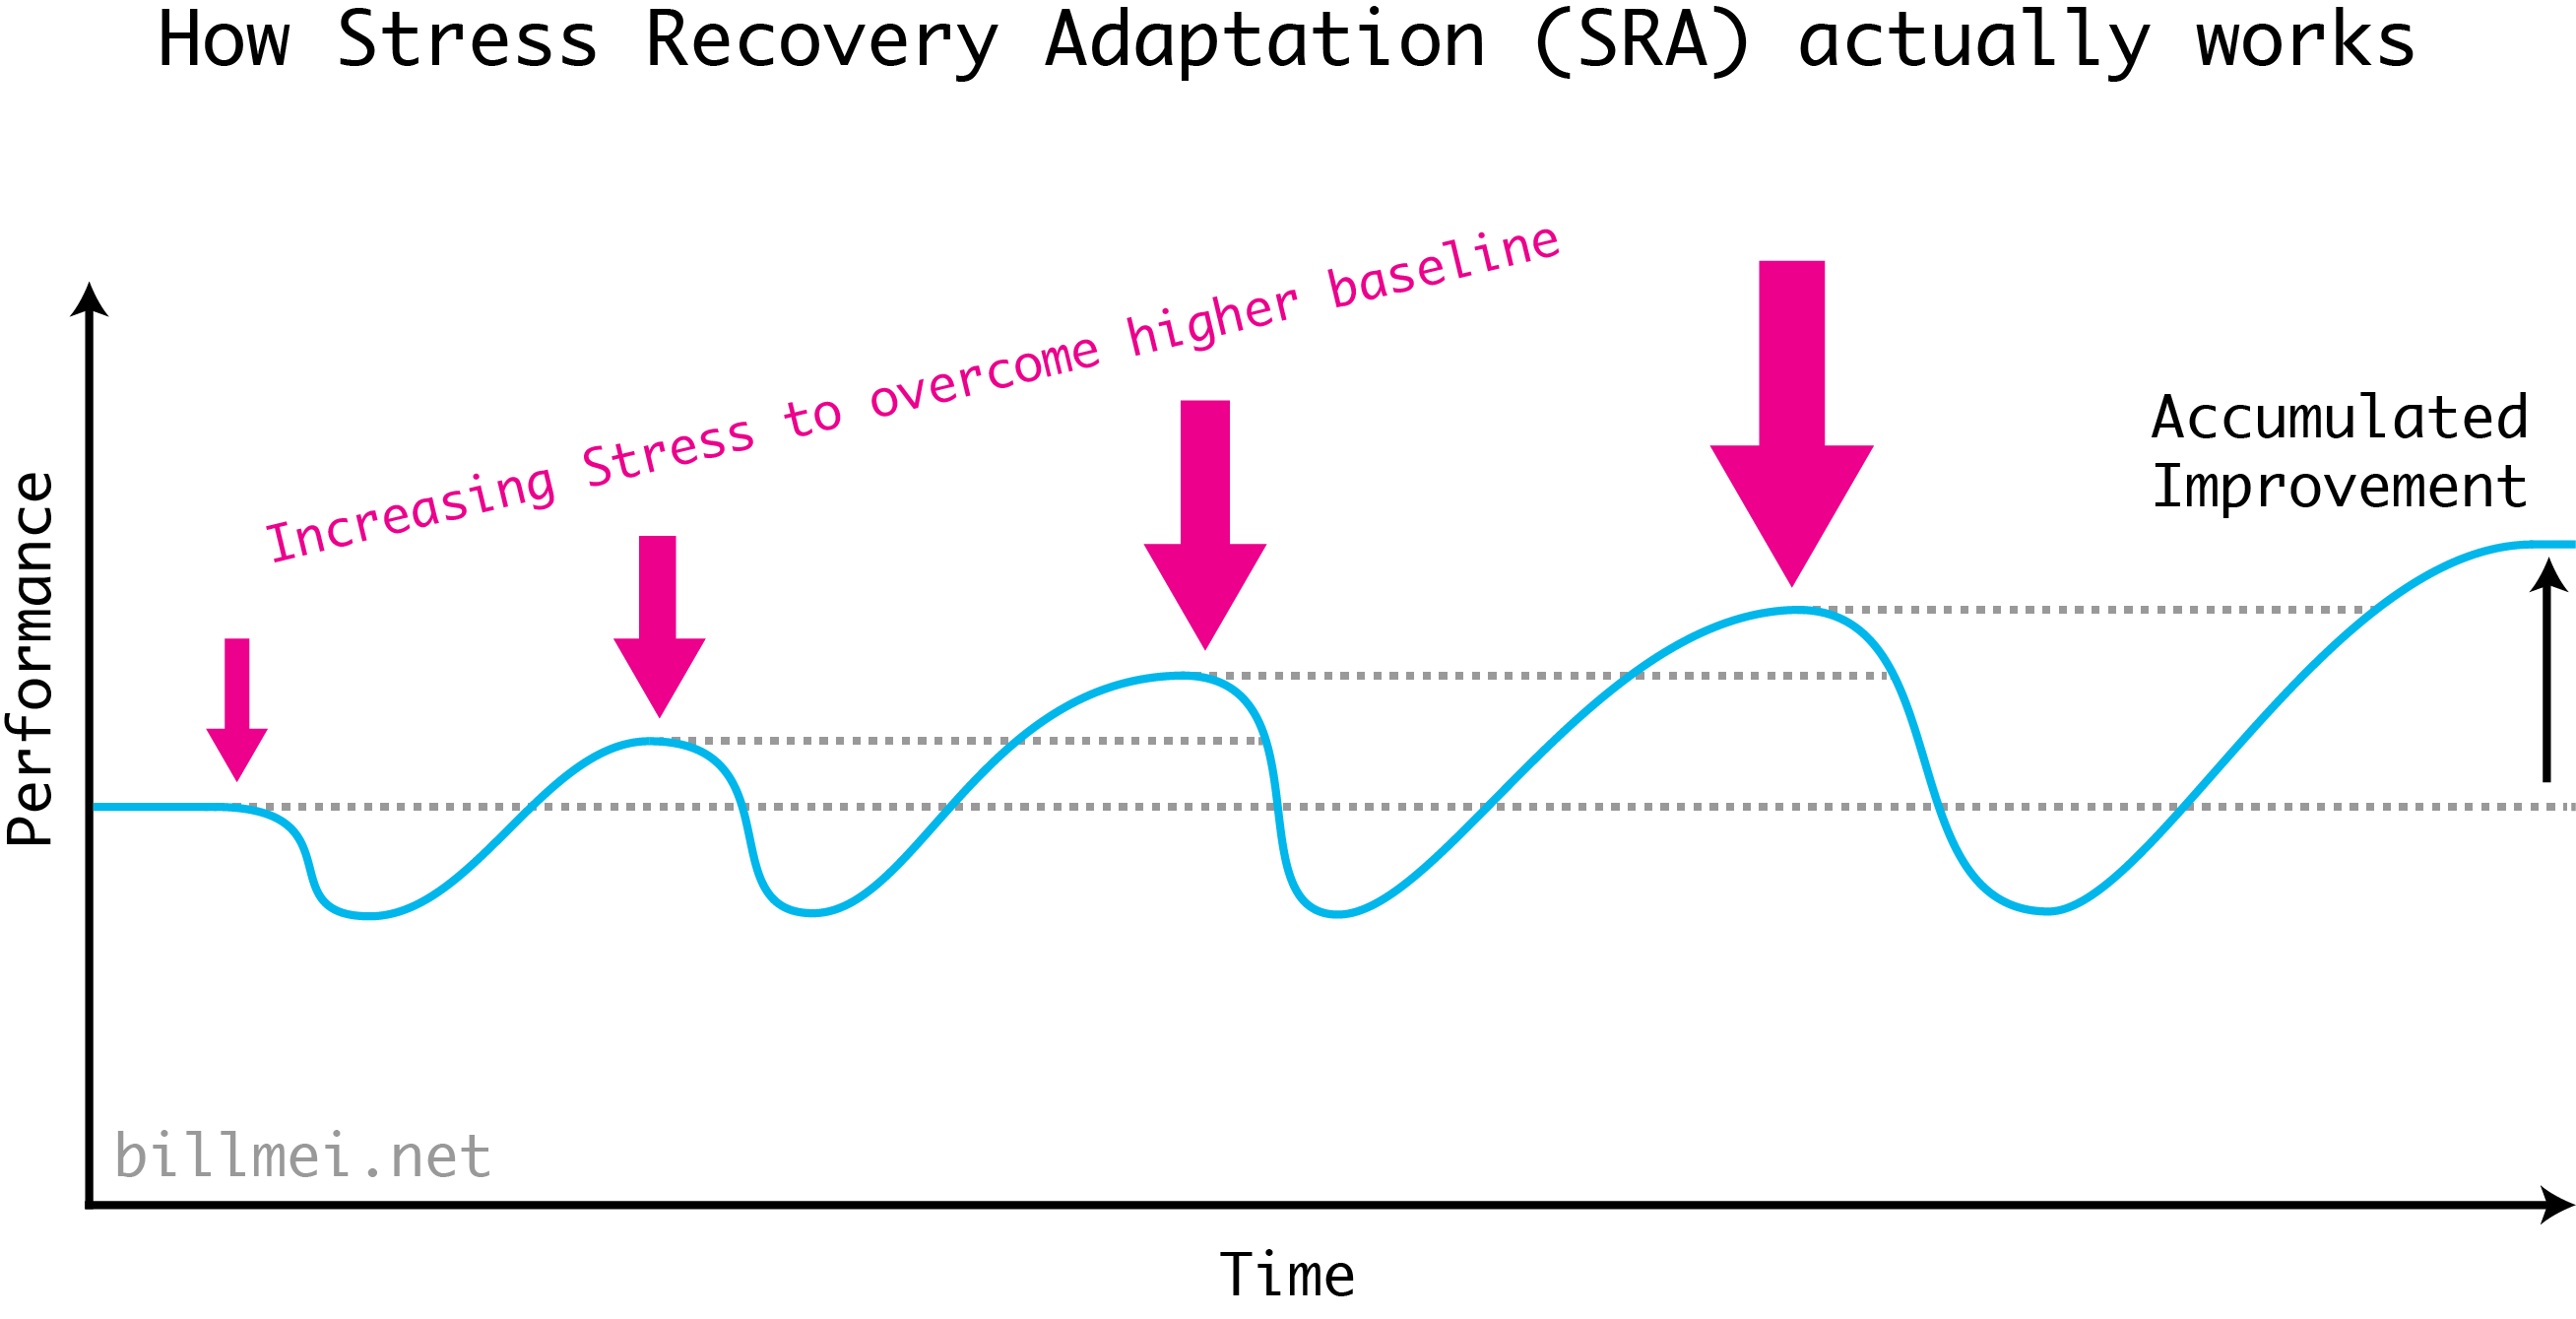 How the Stress Recovery Adaptation (SRA) cycle actually works. The second time after a workout, you've already achieved a higher baseline, so in order to overcome this to achieve an even higher baseline, you have to apply even more stress. Thus to accumulate improvement, the stress you apply is getting larger and larger over time.